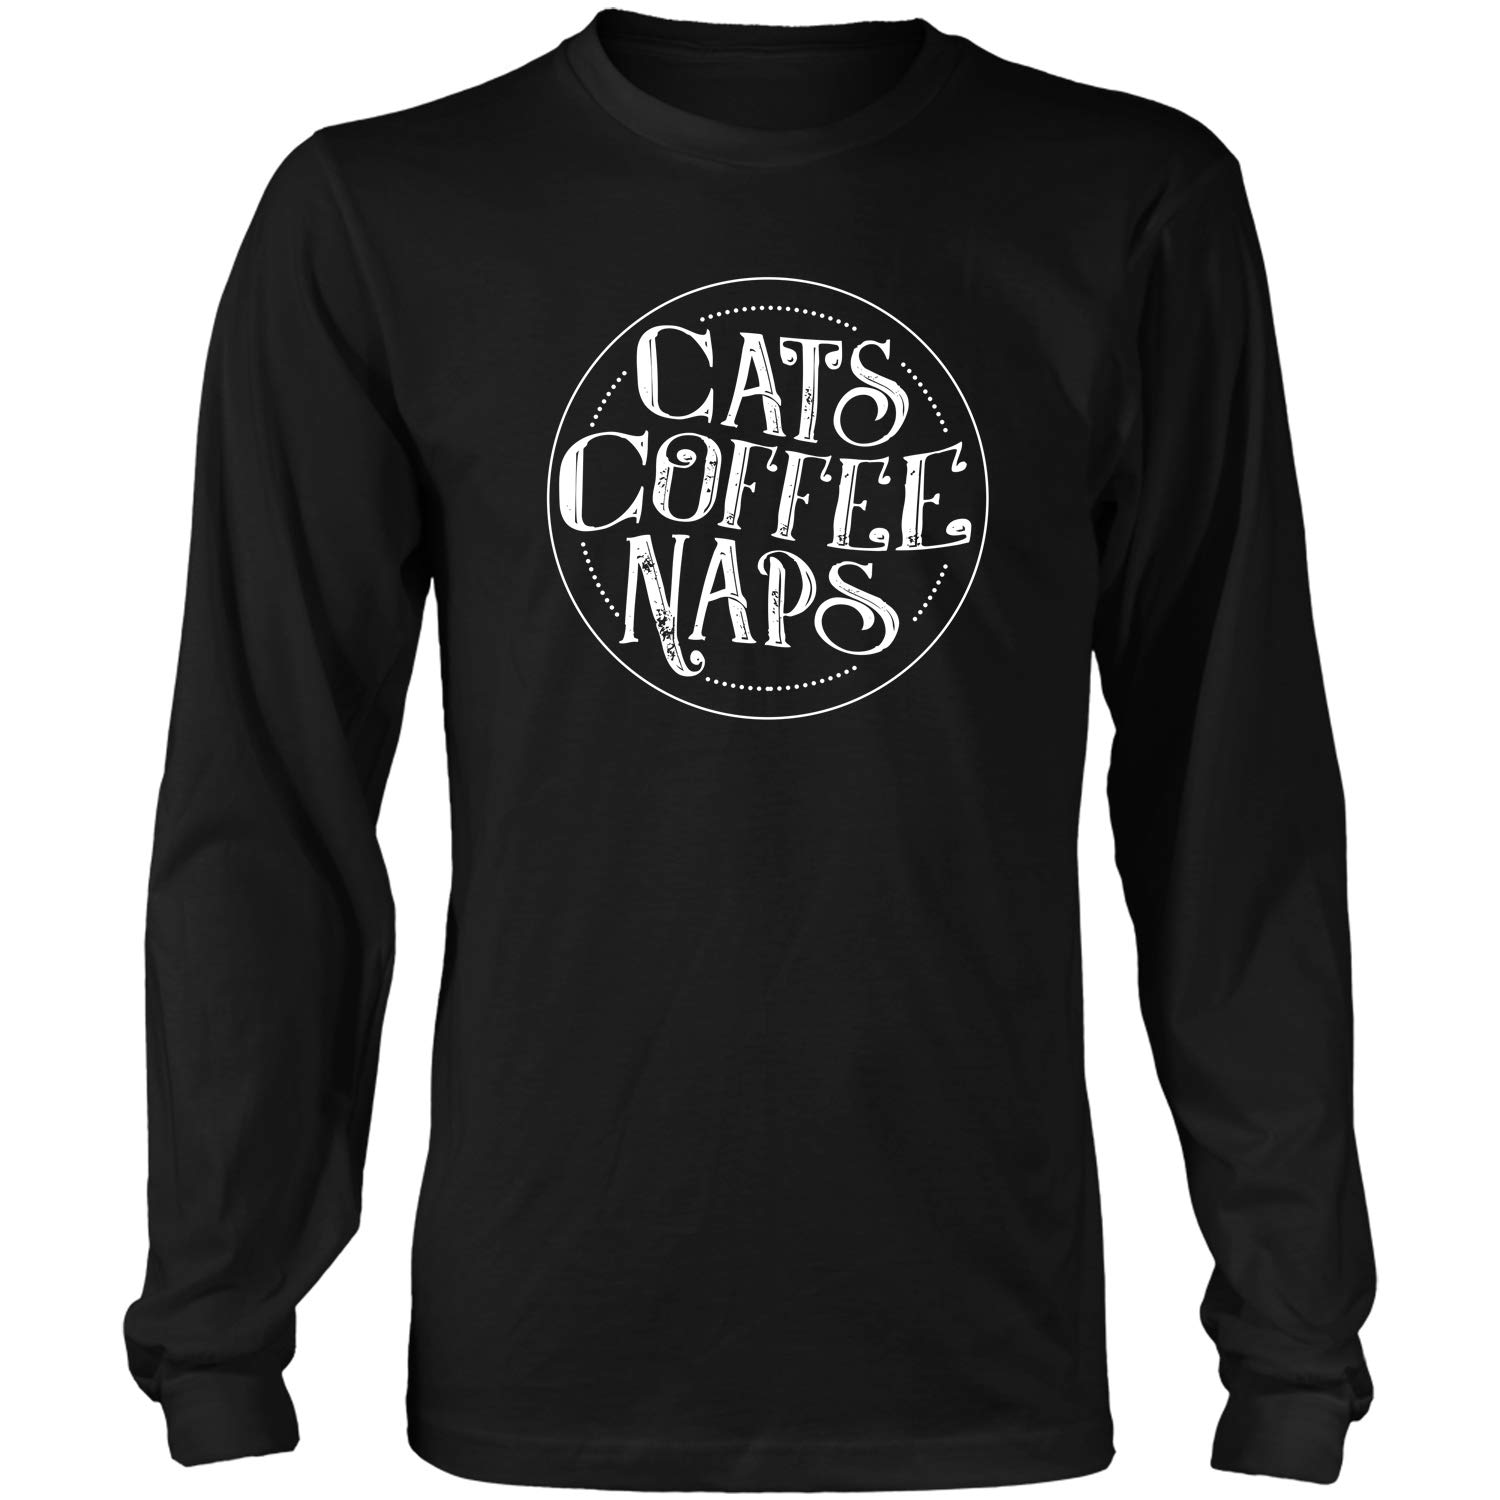 Cats Coffee Napsbirthday Gifts For Pet Loverscute Cat Lov Tshirt